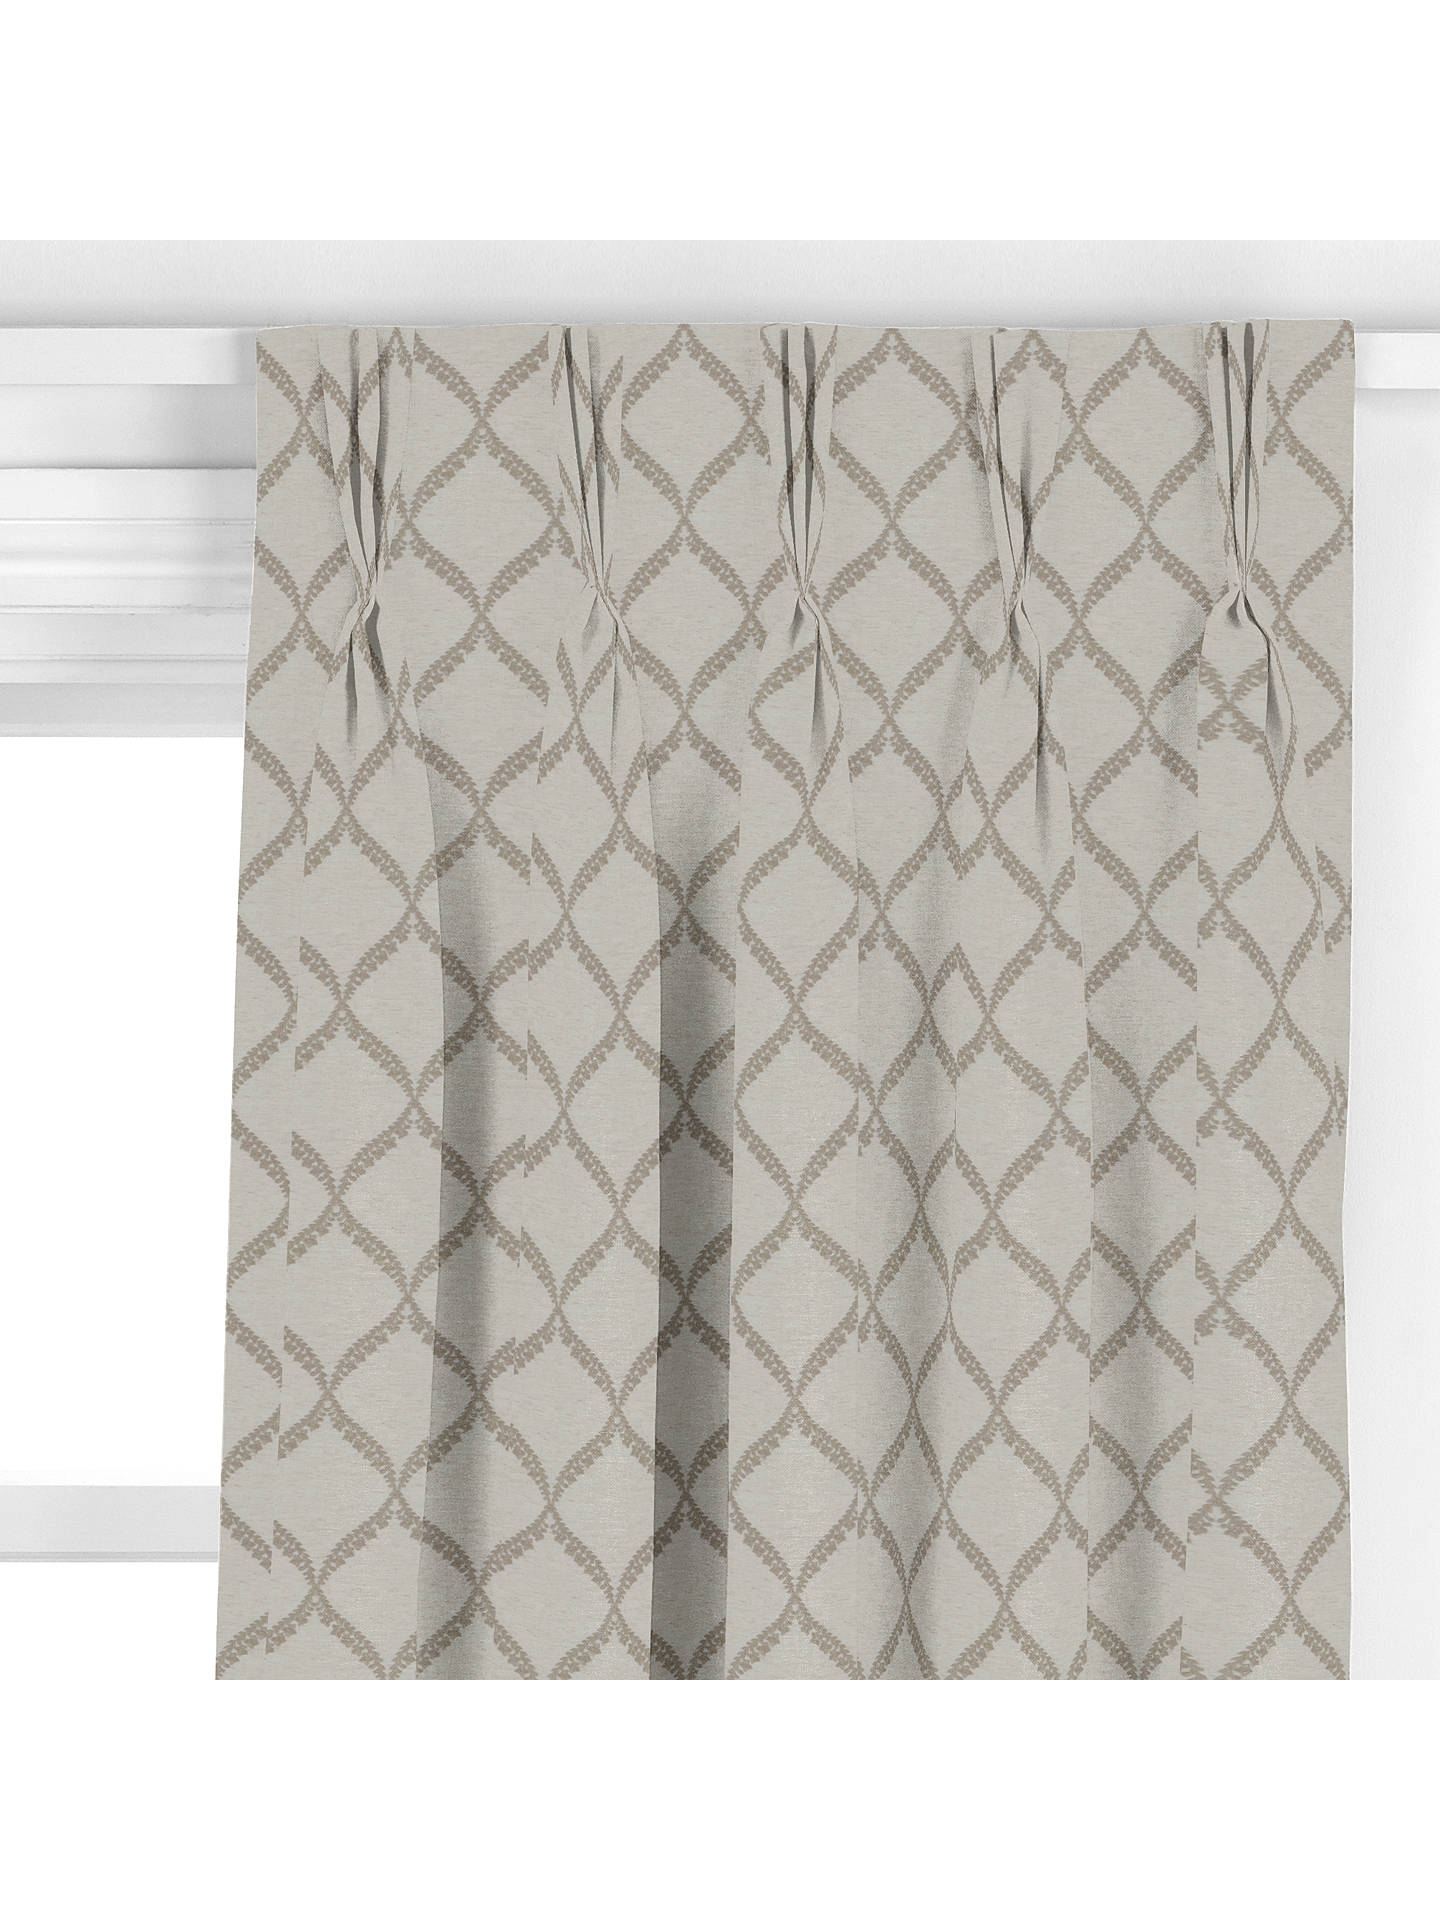 BuySanderson HomeDalby Curtain, Stone Online at johnlewis.com